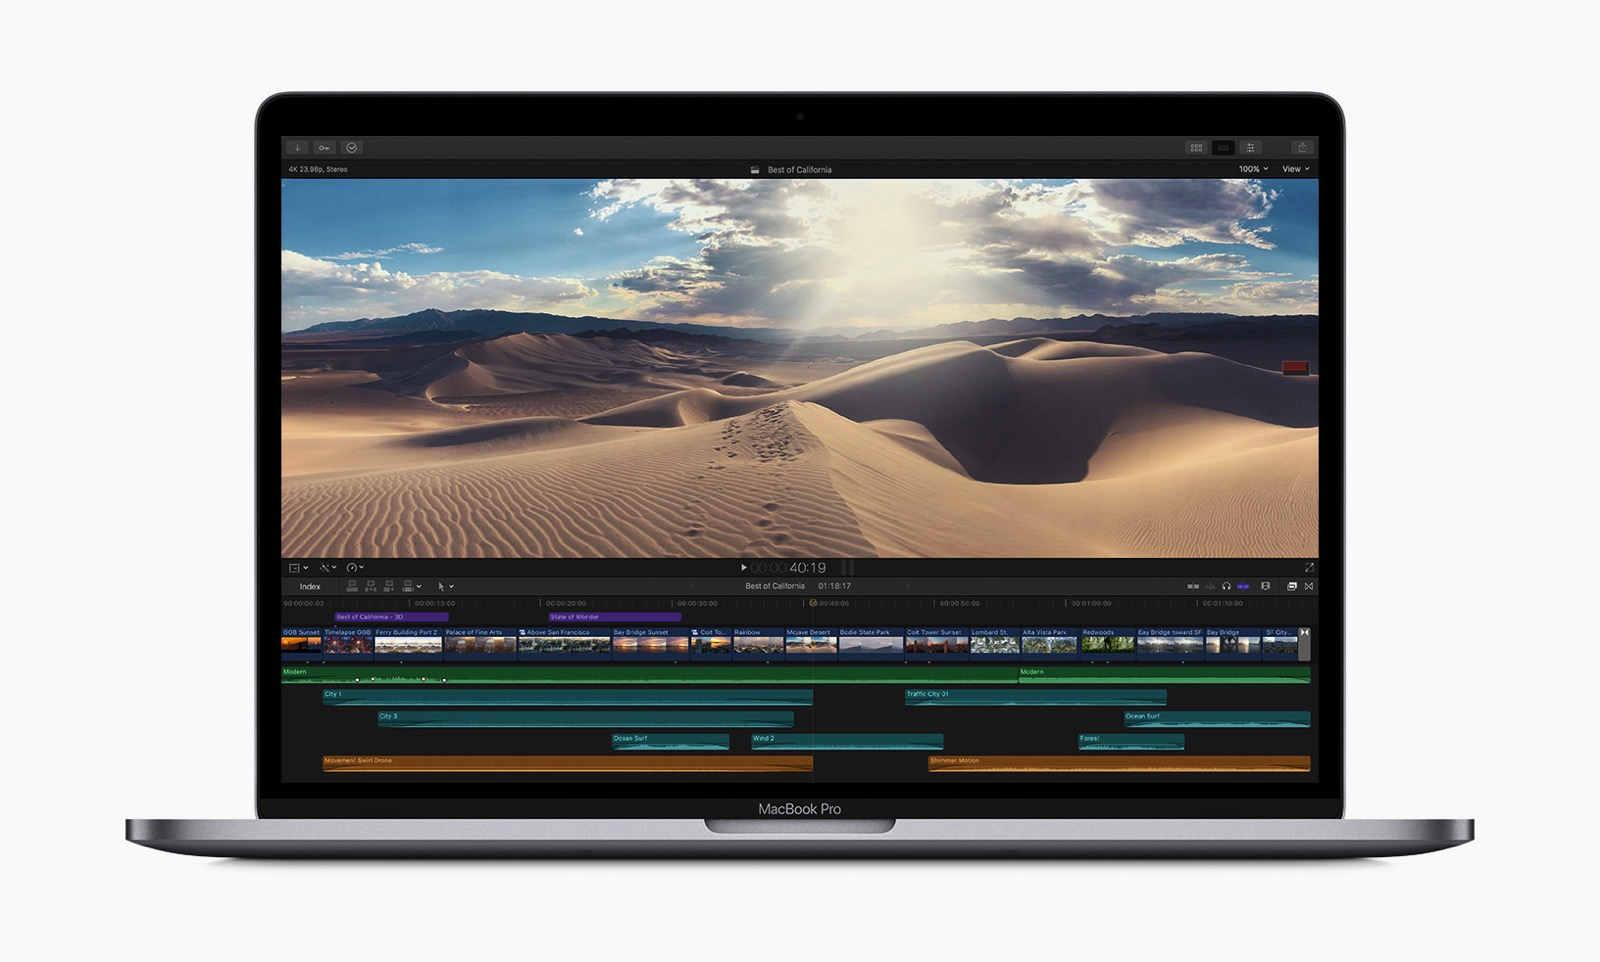 Apple macbookpro 8 core video editing 05212019